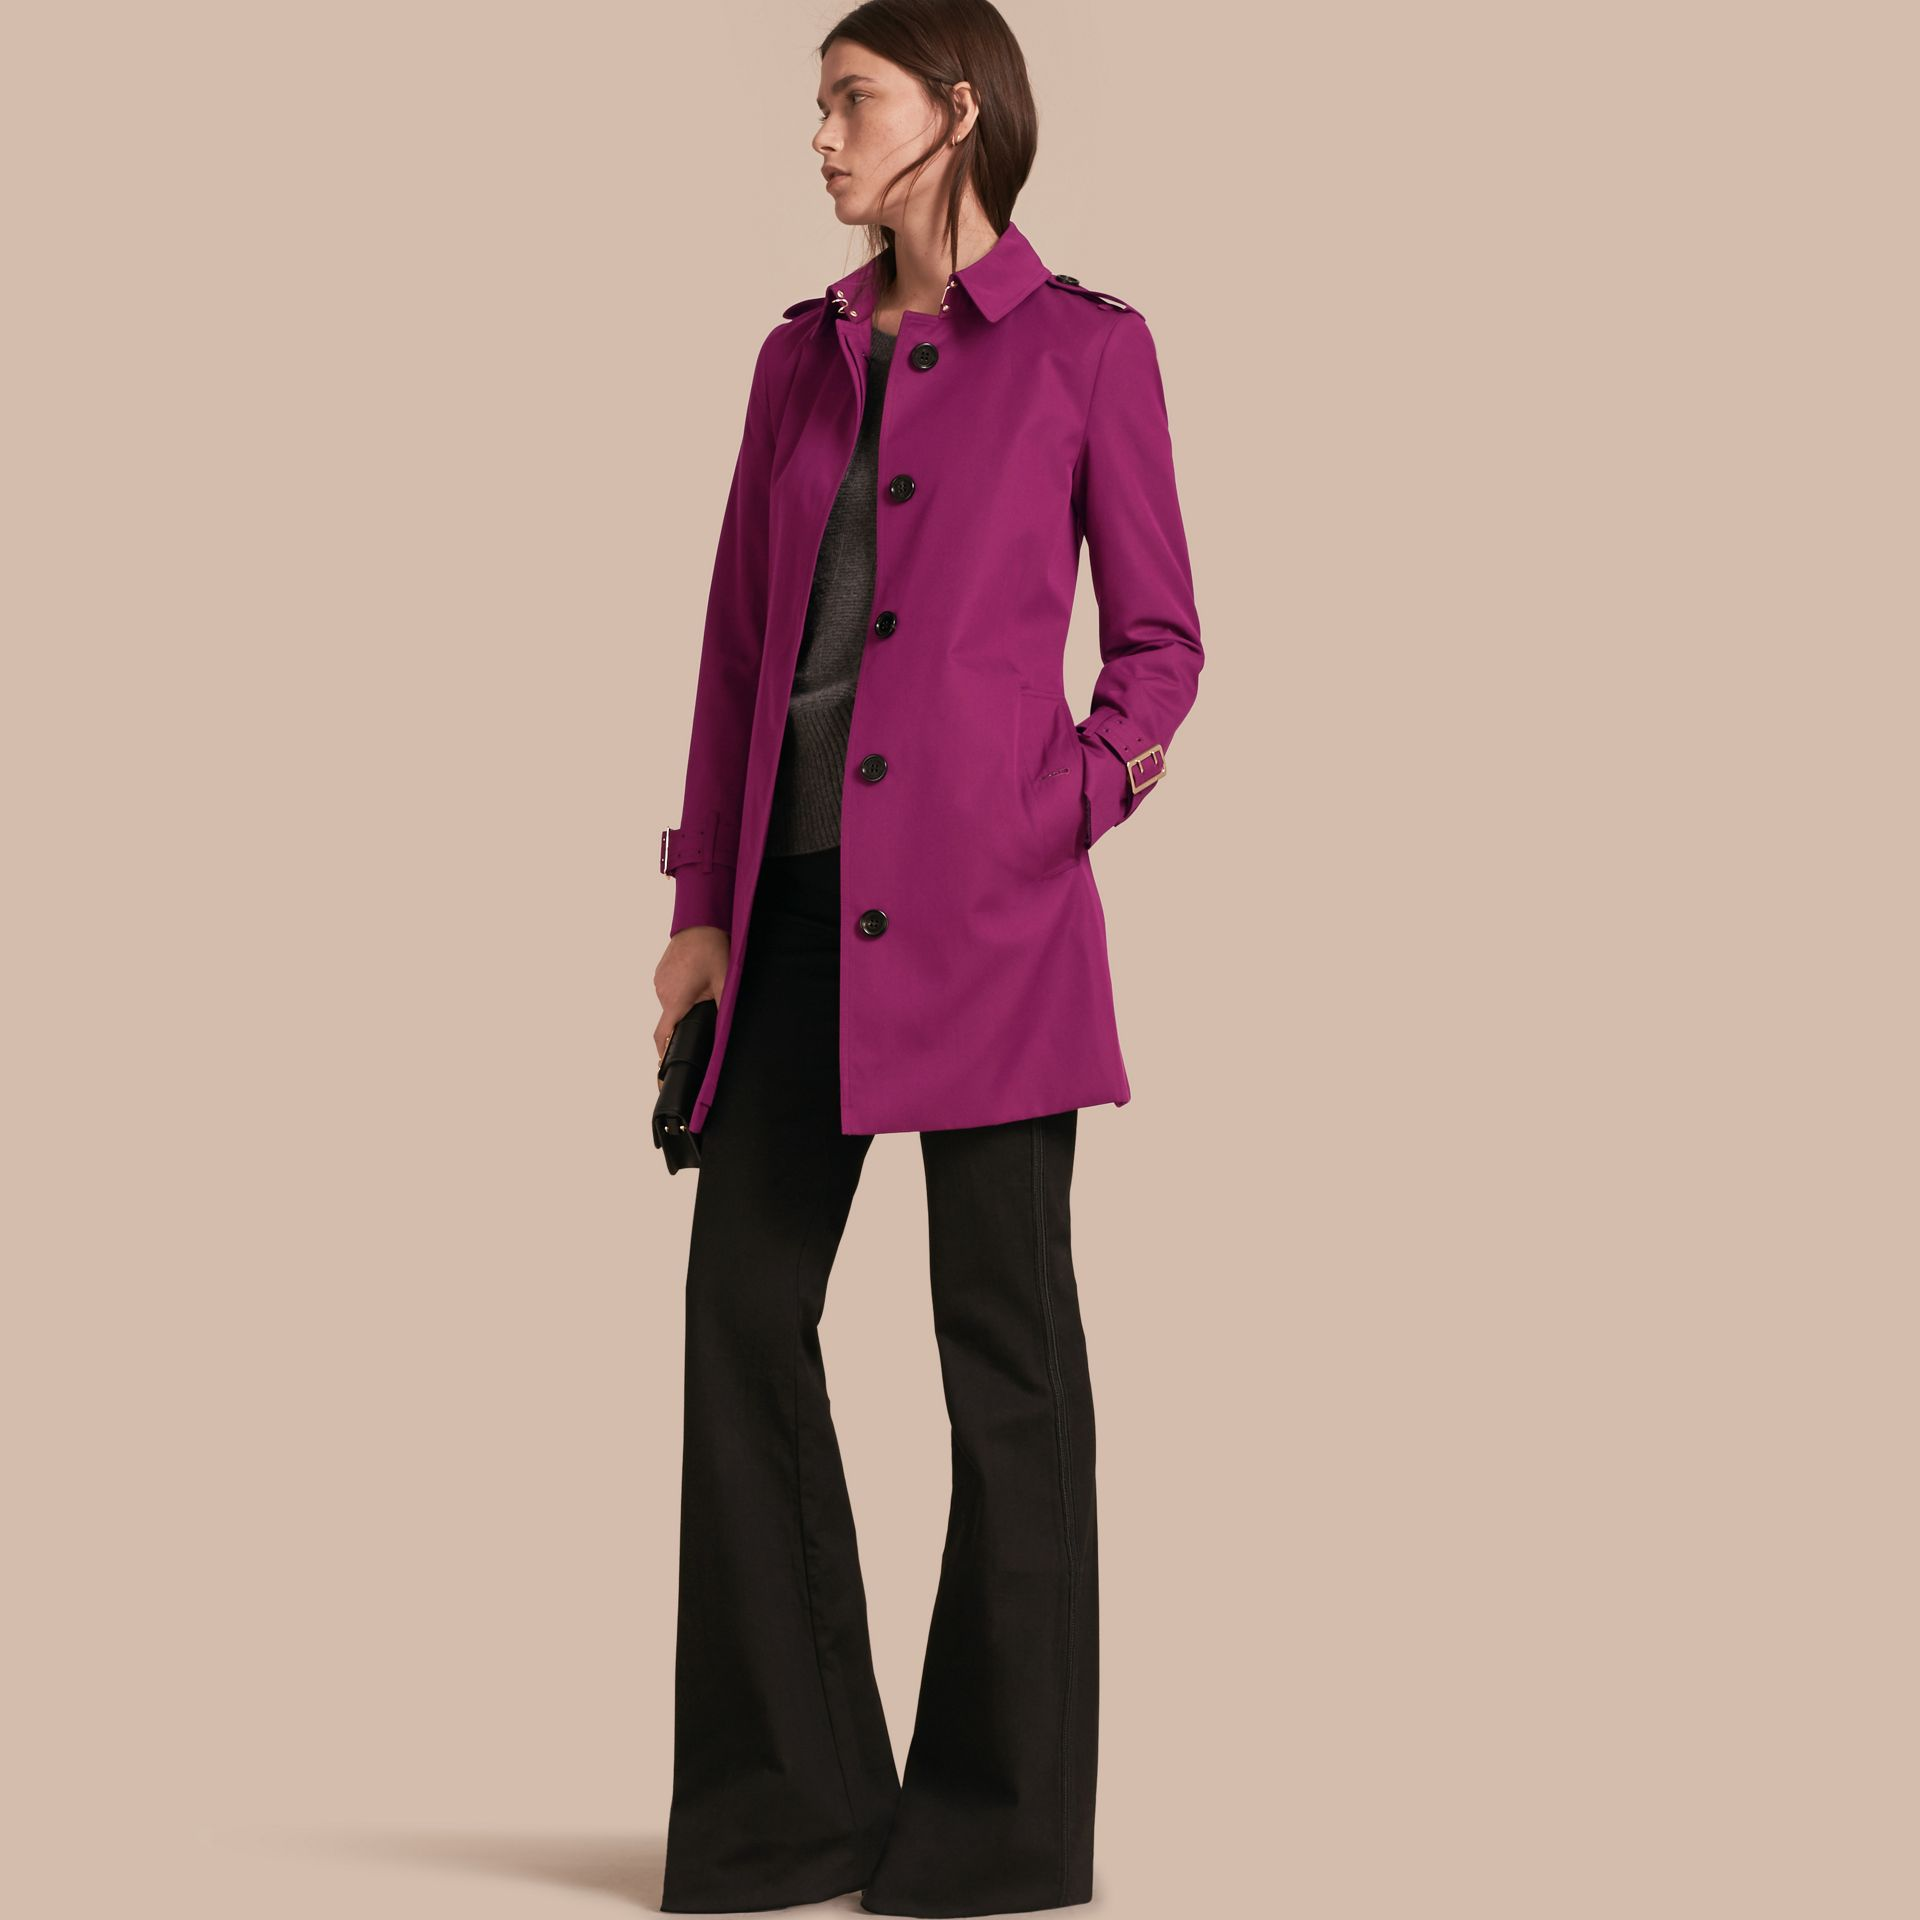 Magenta pink Single-breasted Trench Coat with Metal Buckle Detail Magenta Pink - gallery image 1